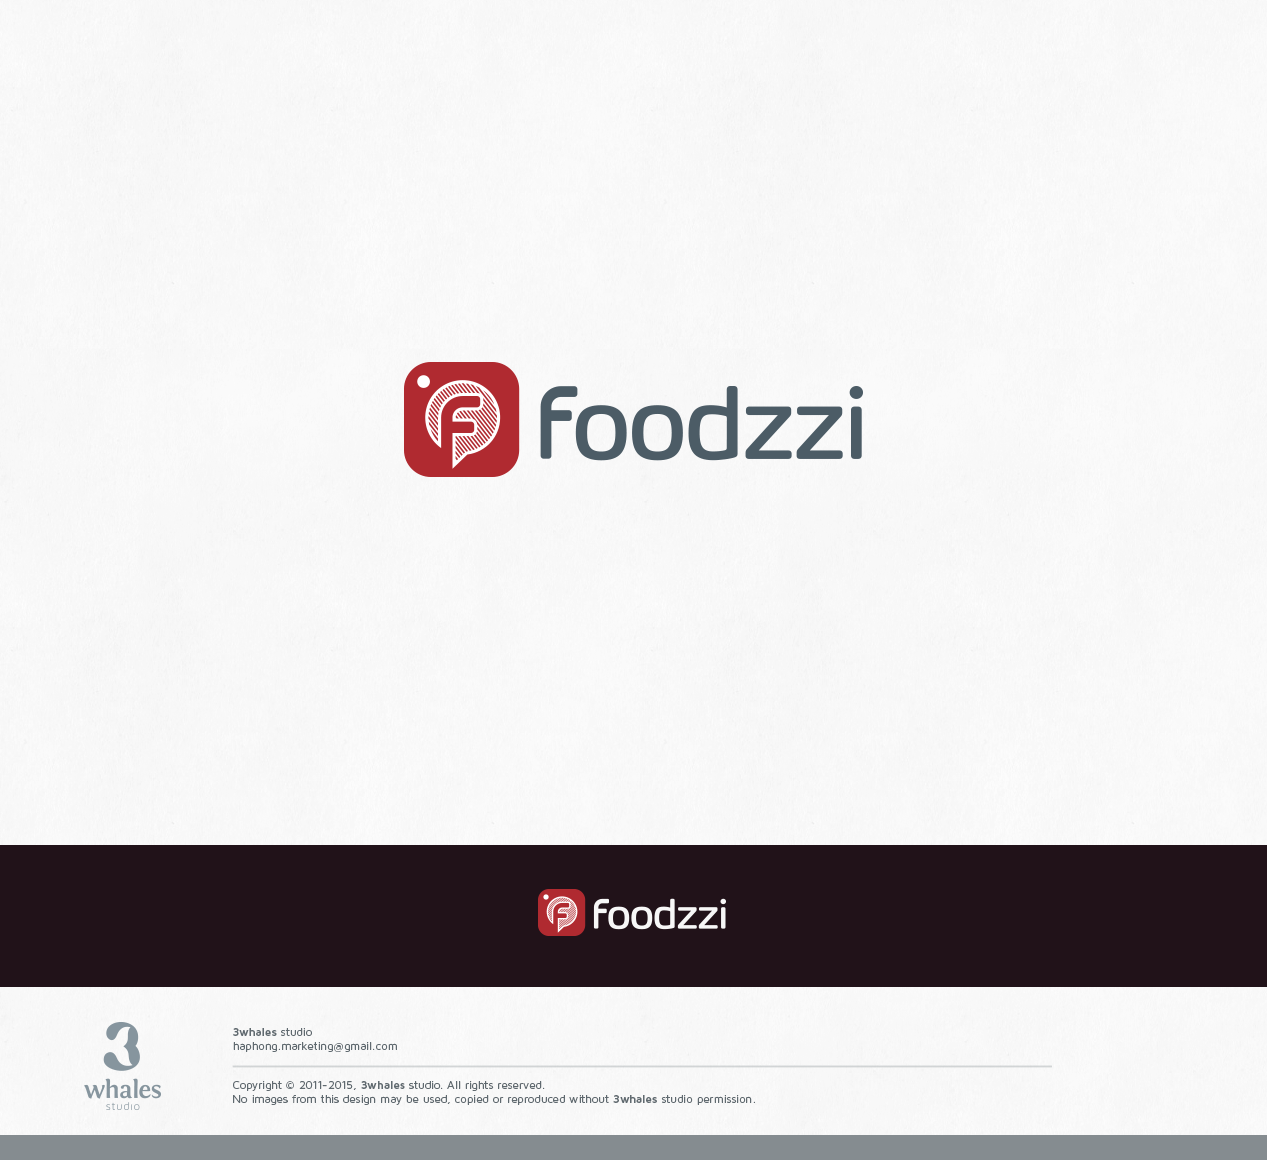 Create a modern typography logo for a food photo/recipe sharing website. Icon in your logo should be usable as app icon.